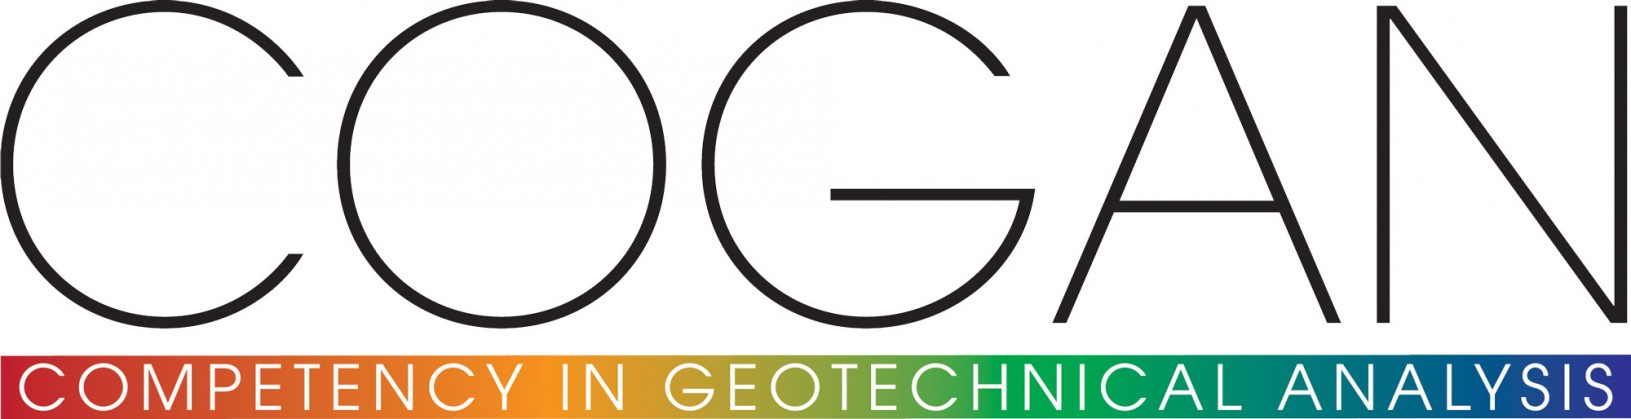 COGAN - Competency in Geotechnical Analysis